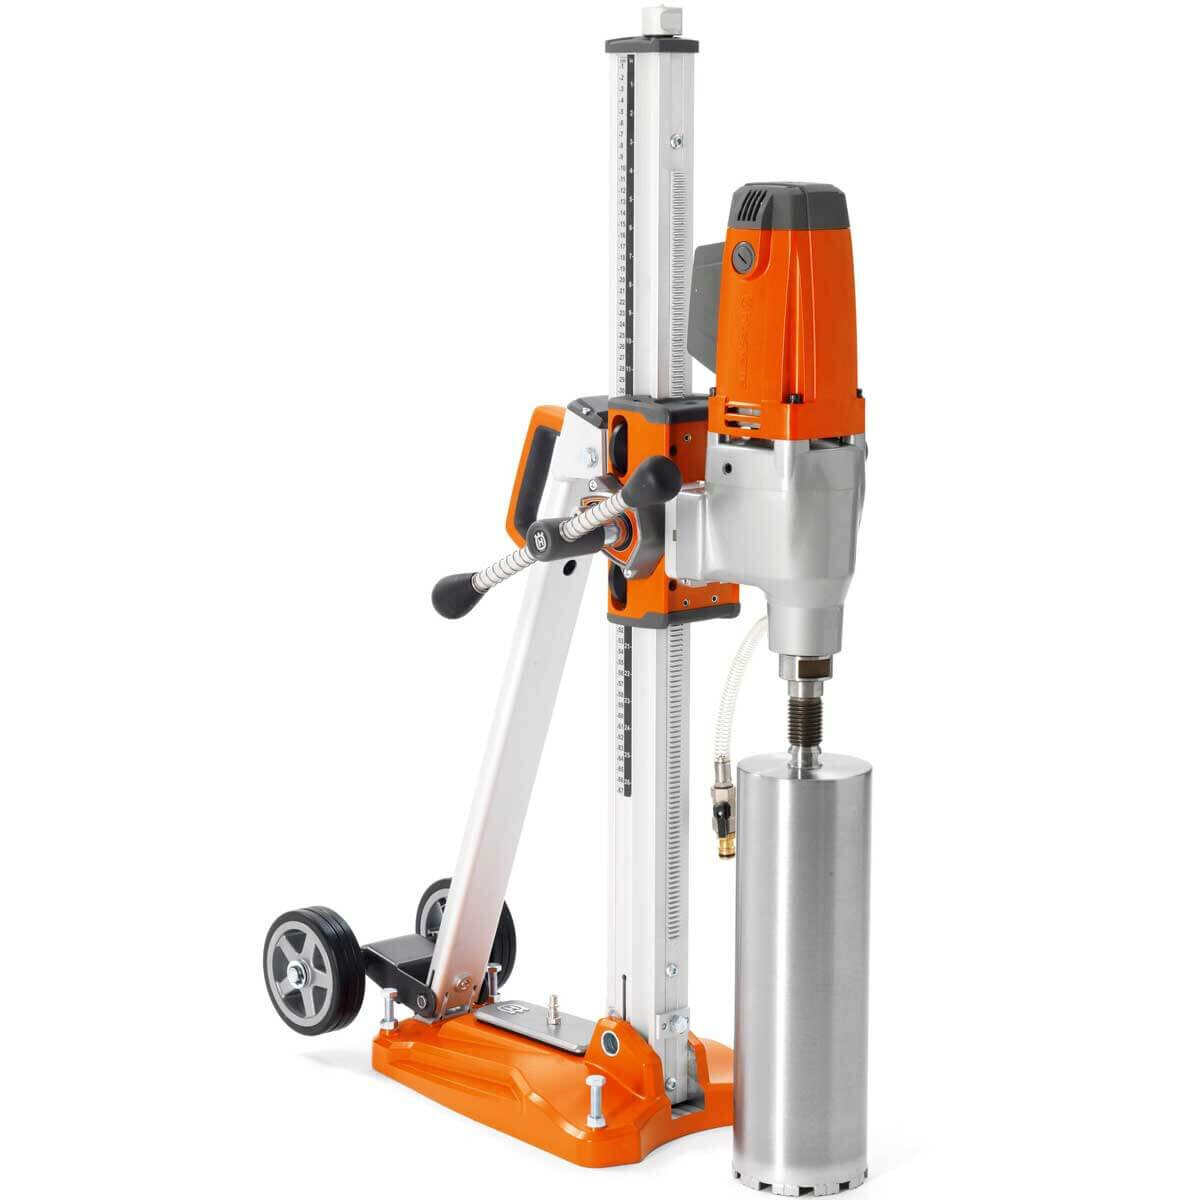 Husqvarna DMS 240 Core Drill Stand and Motor